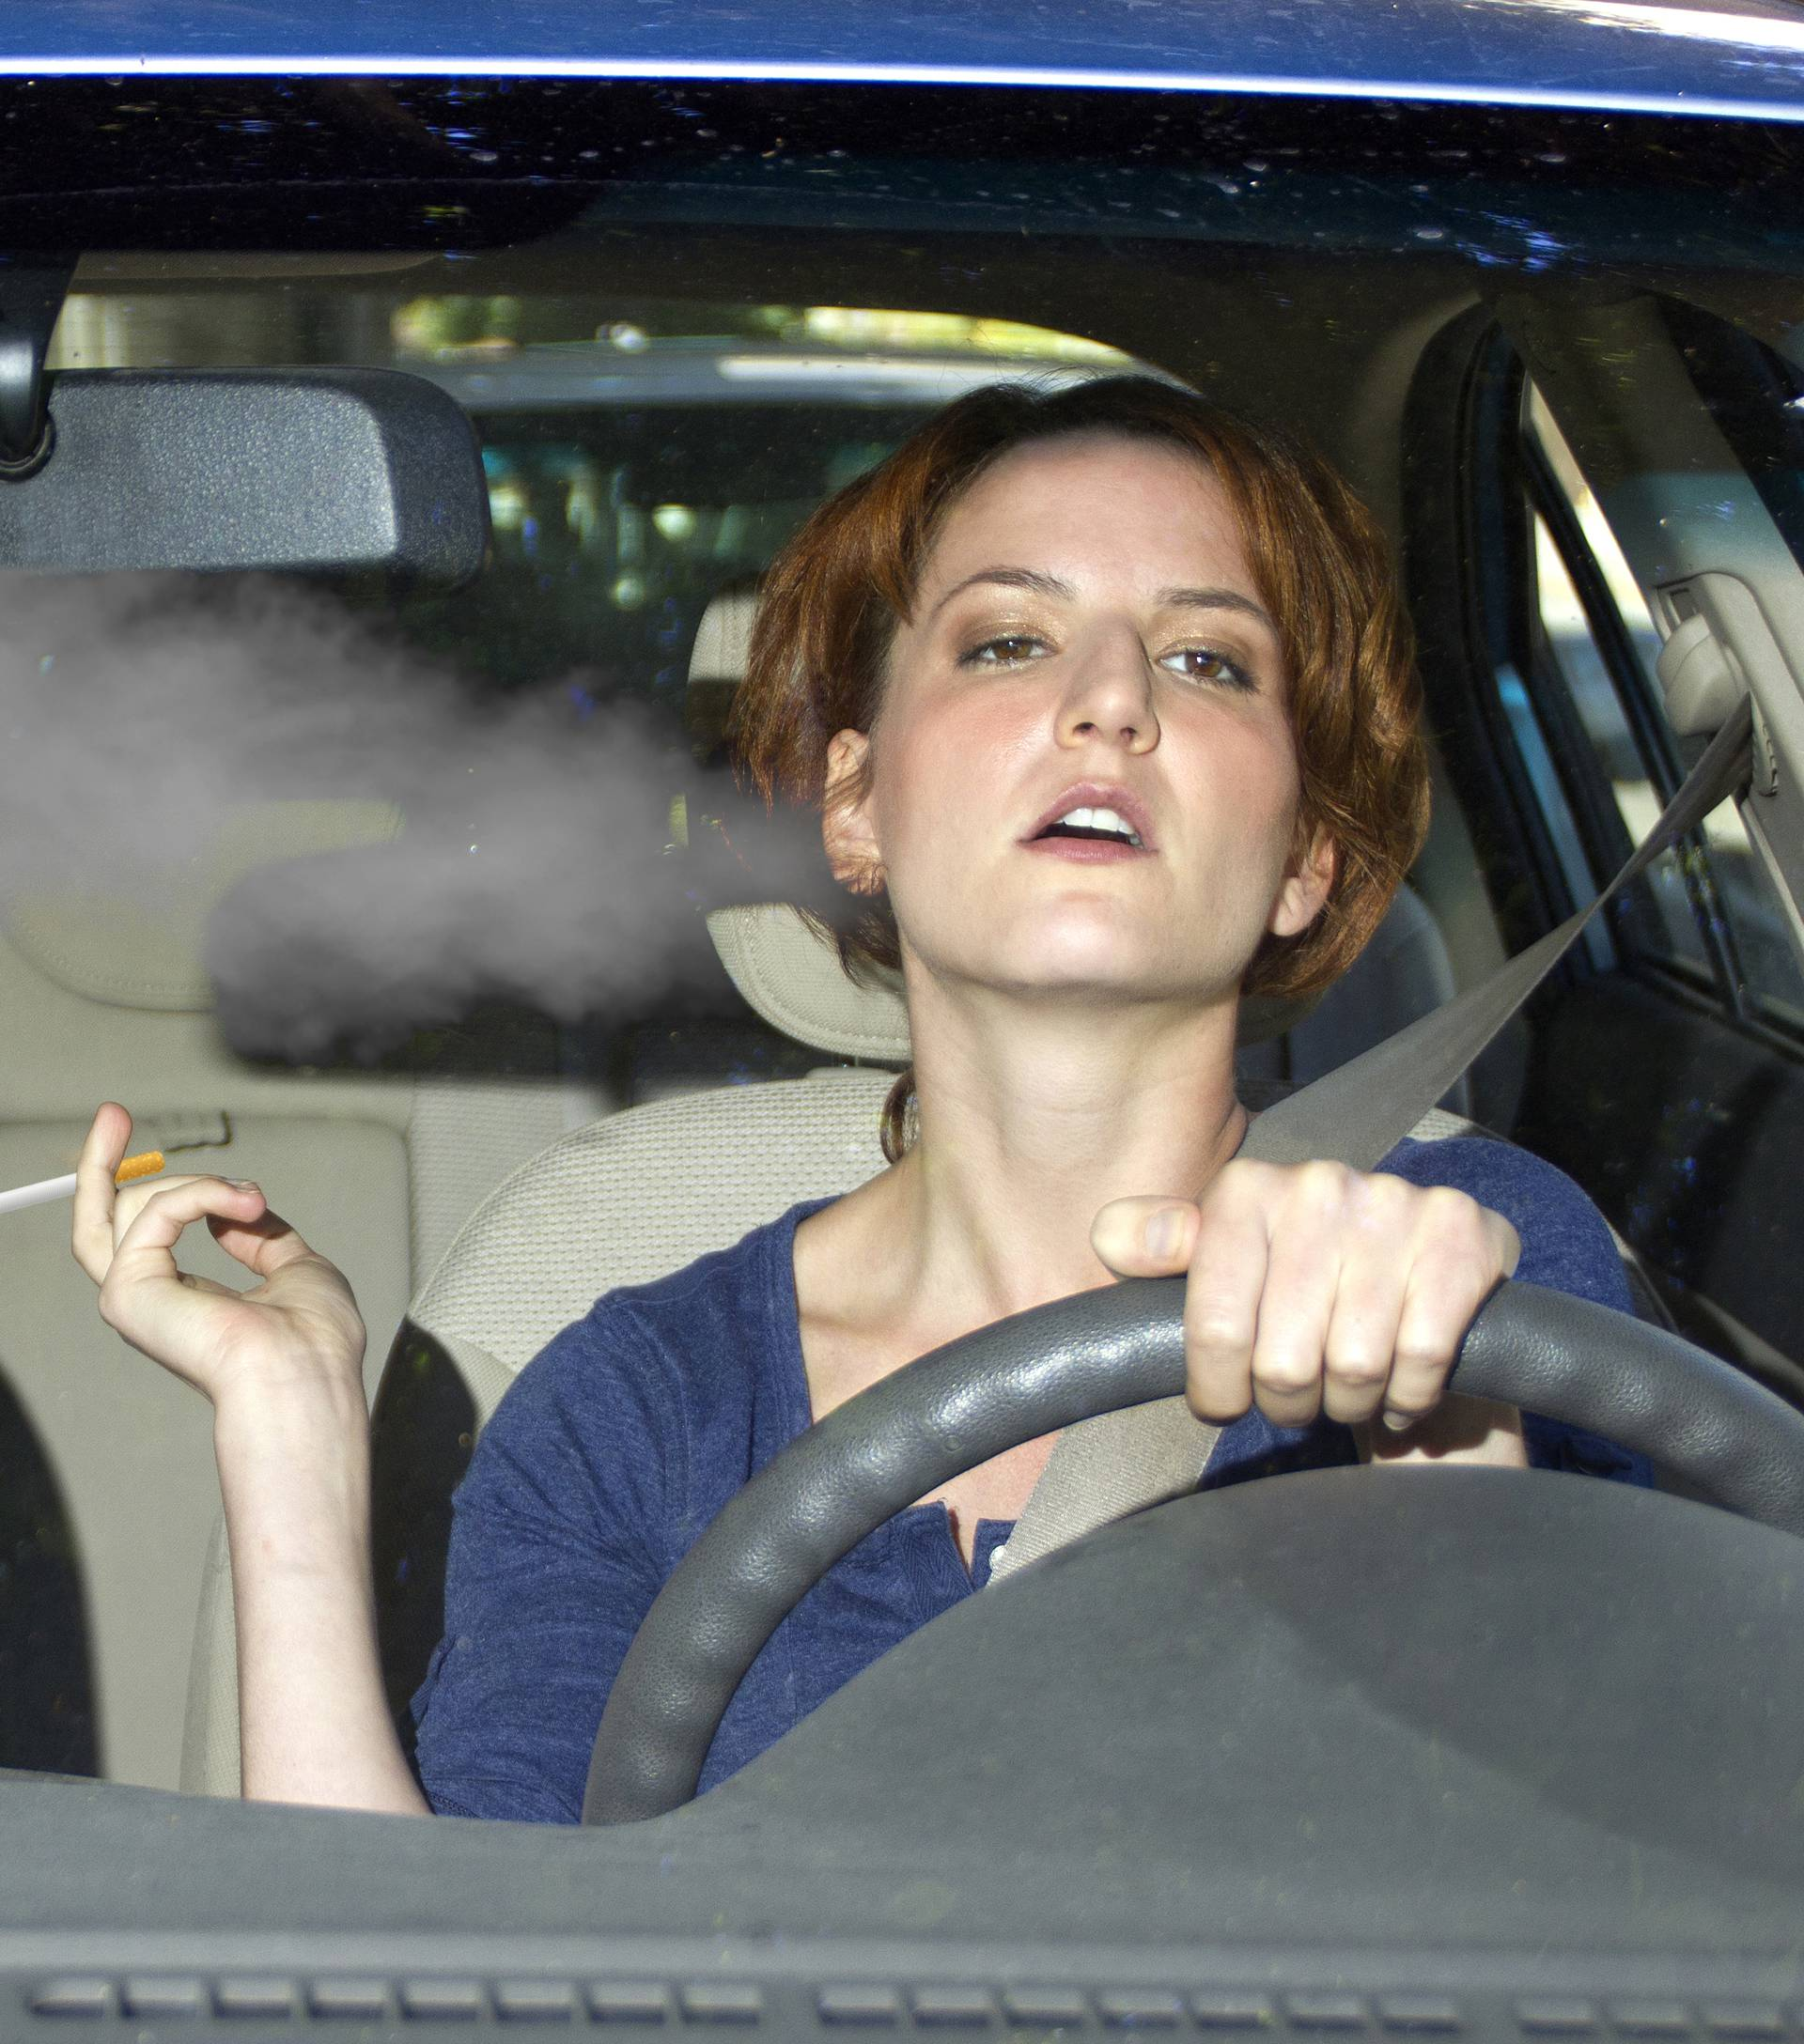 Second Hand Smoke From a Driver Smoking in a Car